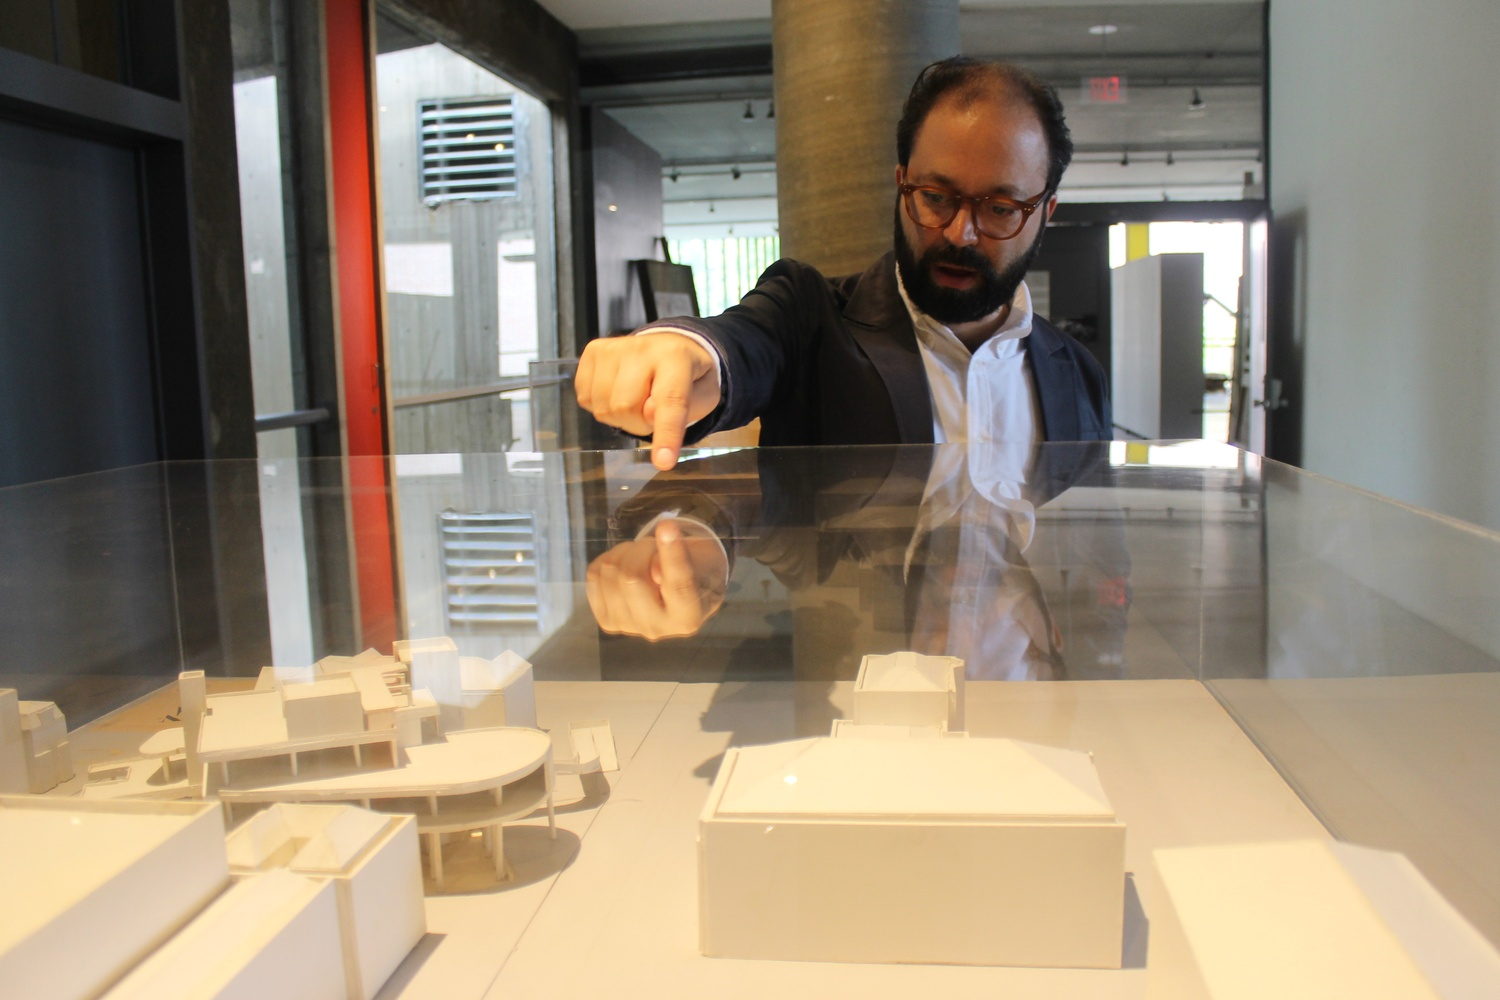 Dan Byers points out locations on a scaled model of the Carpenter Center constructed in the 1960's. Byers has recently become Director of the Carpenter Center for the Visual Arts, coming to Harvard from The Institute of Contemporary Arts/Boston.